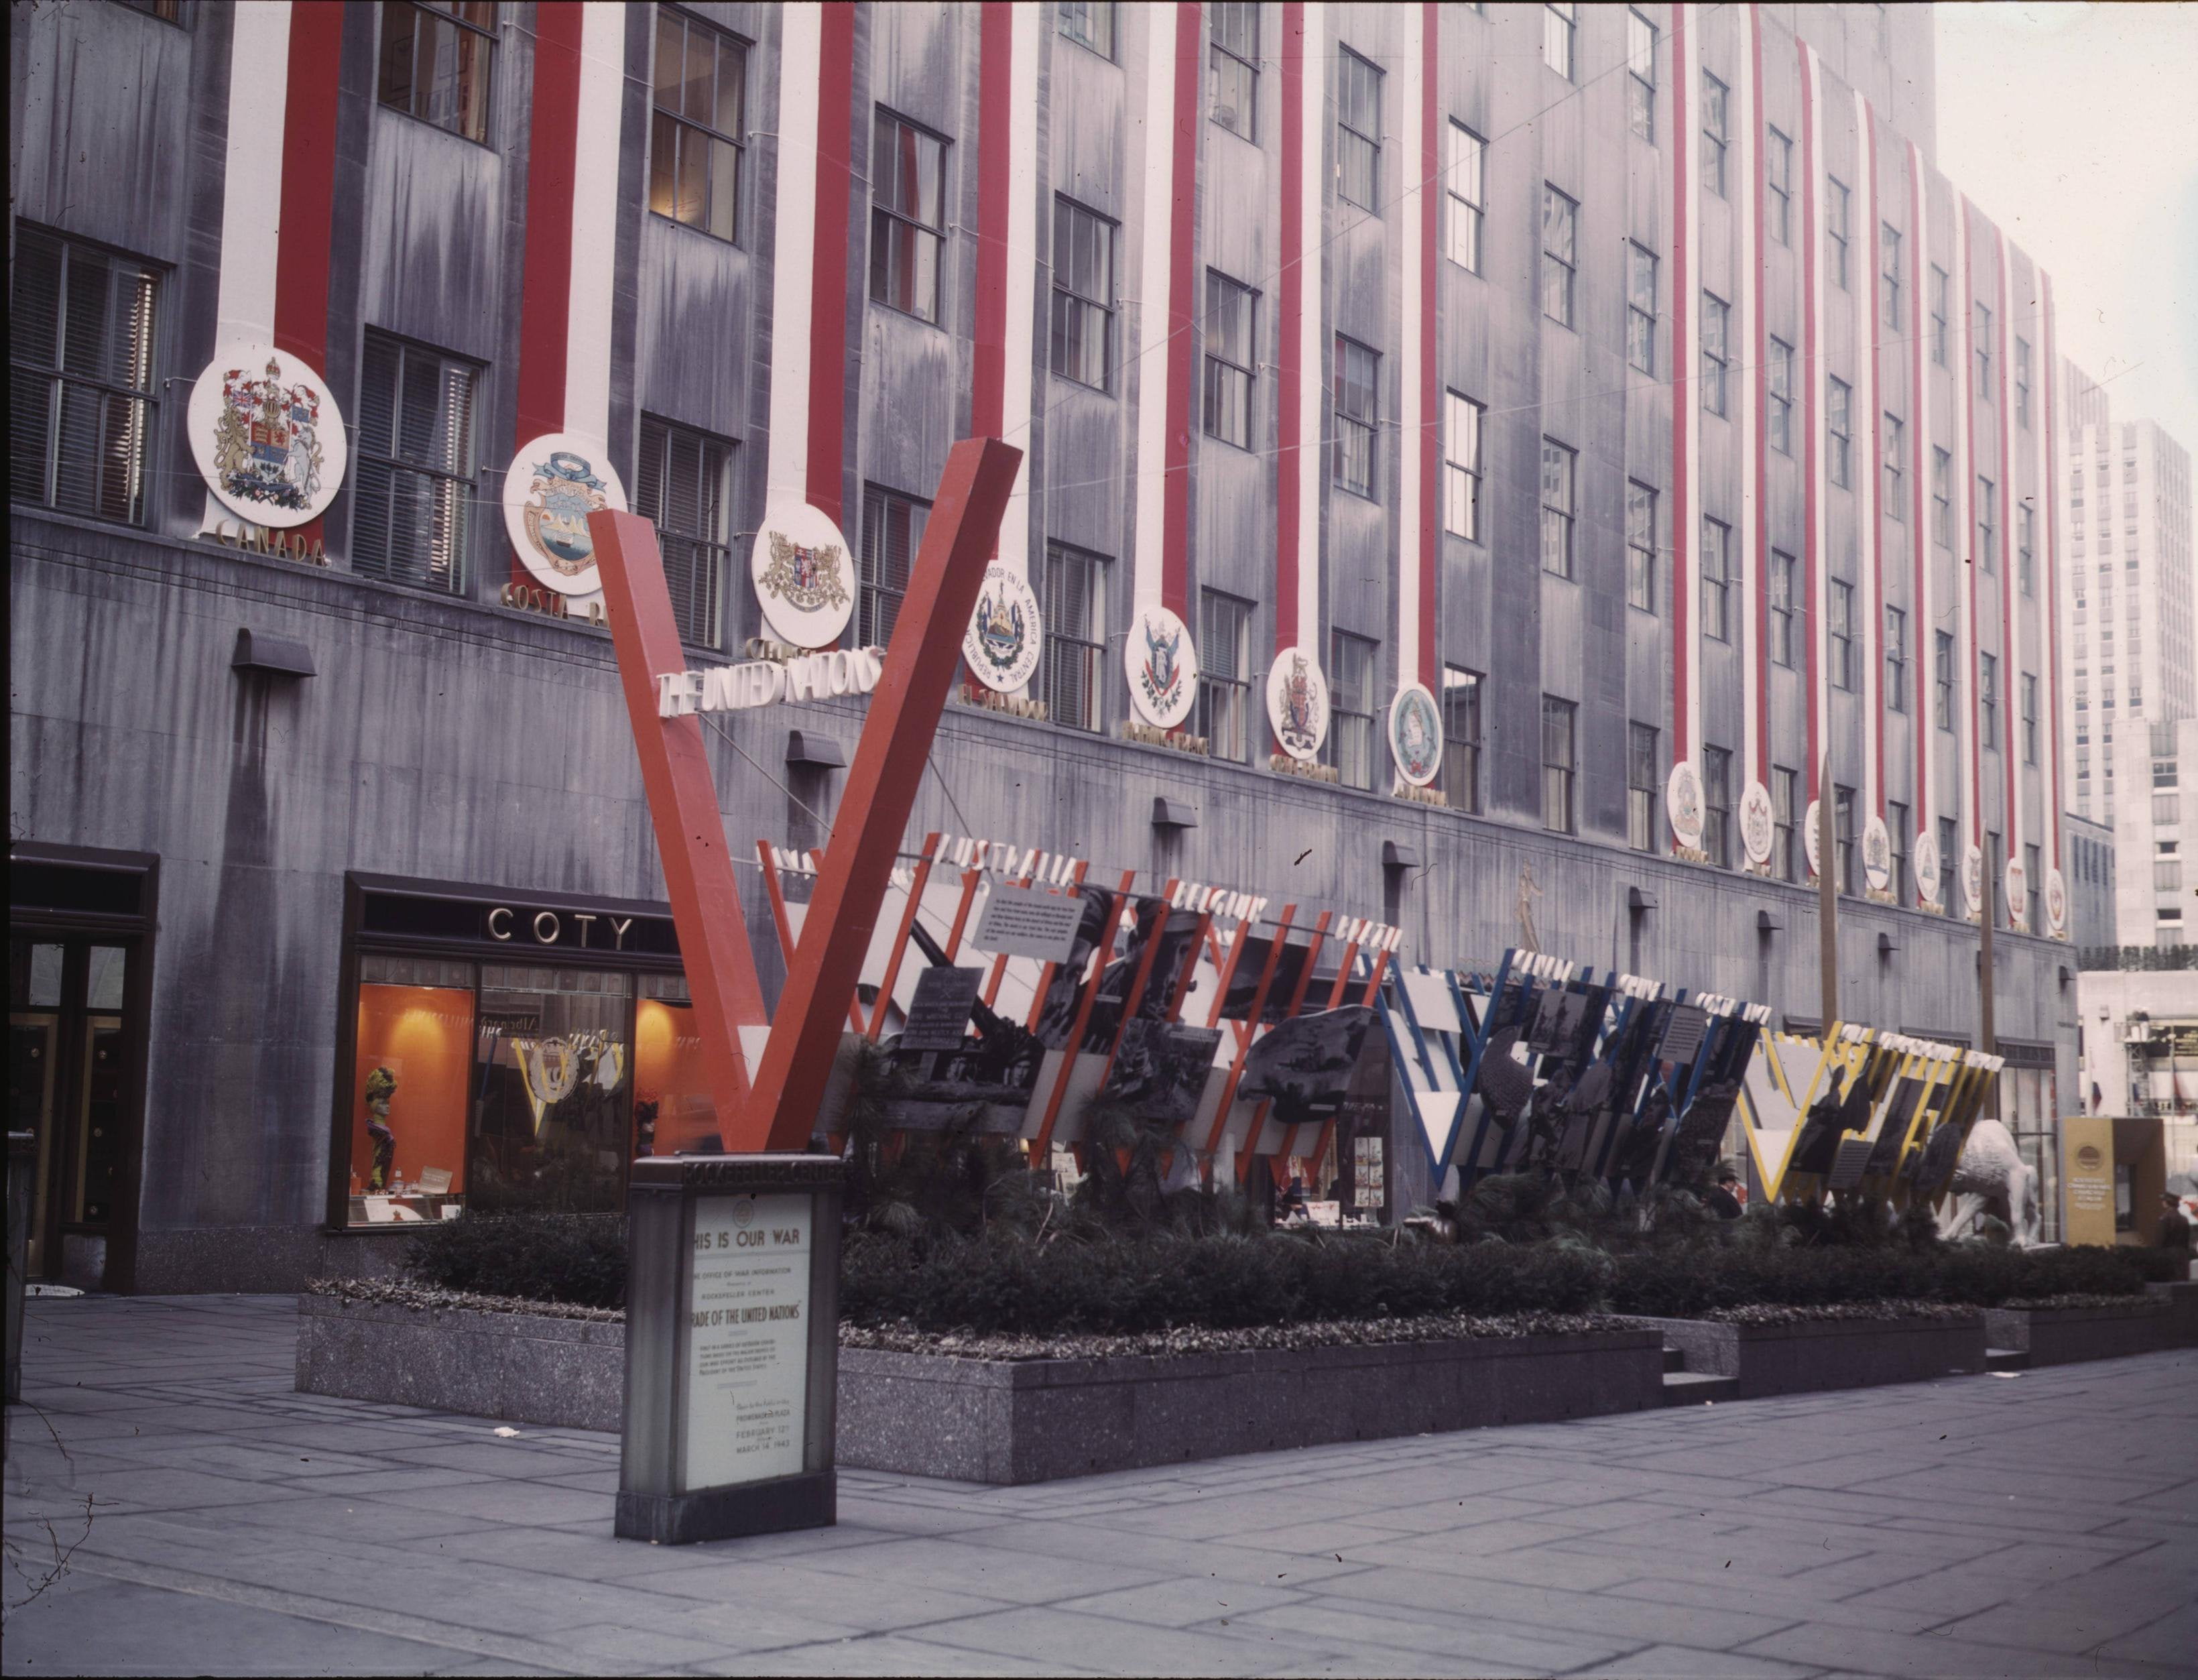 United Nations exhibit at Rockefeller Plaza during WWII ...